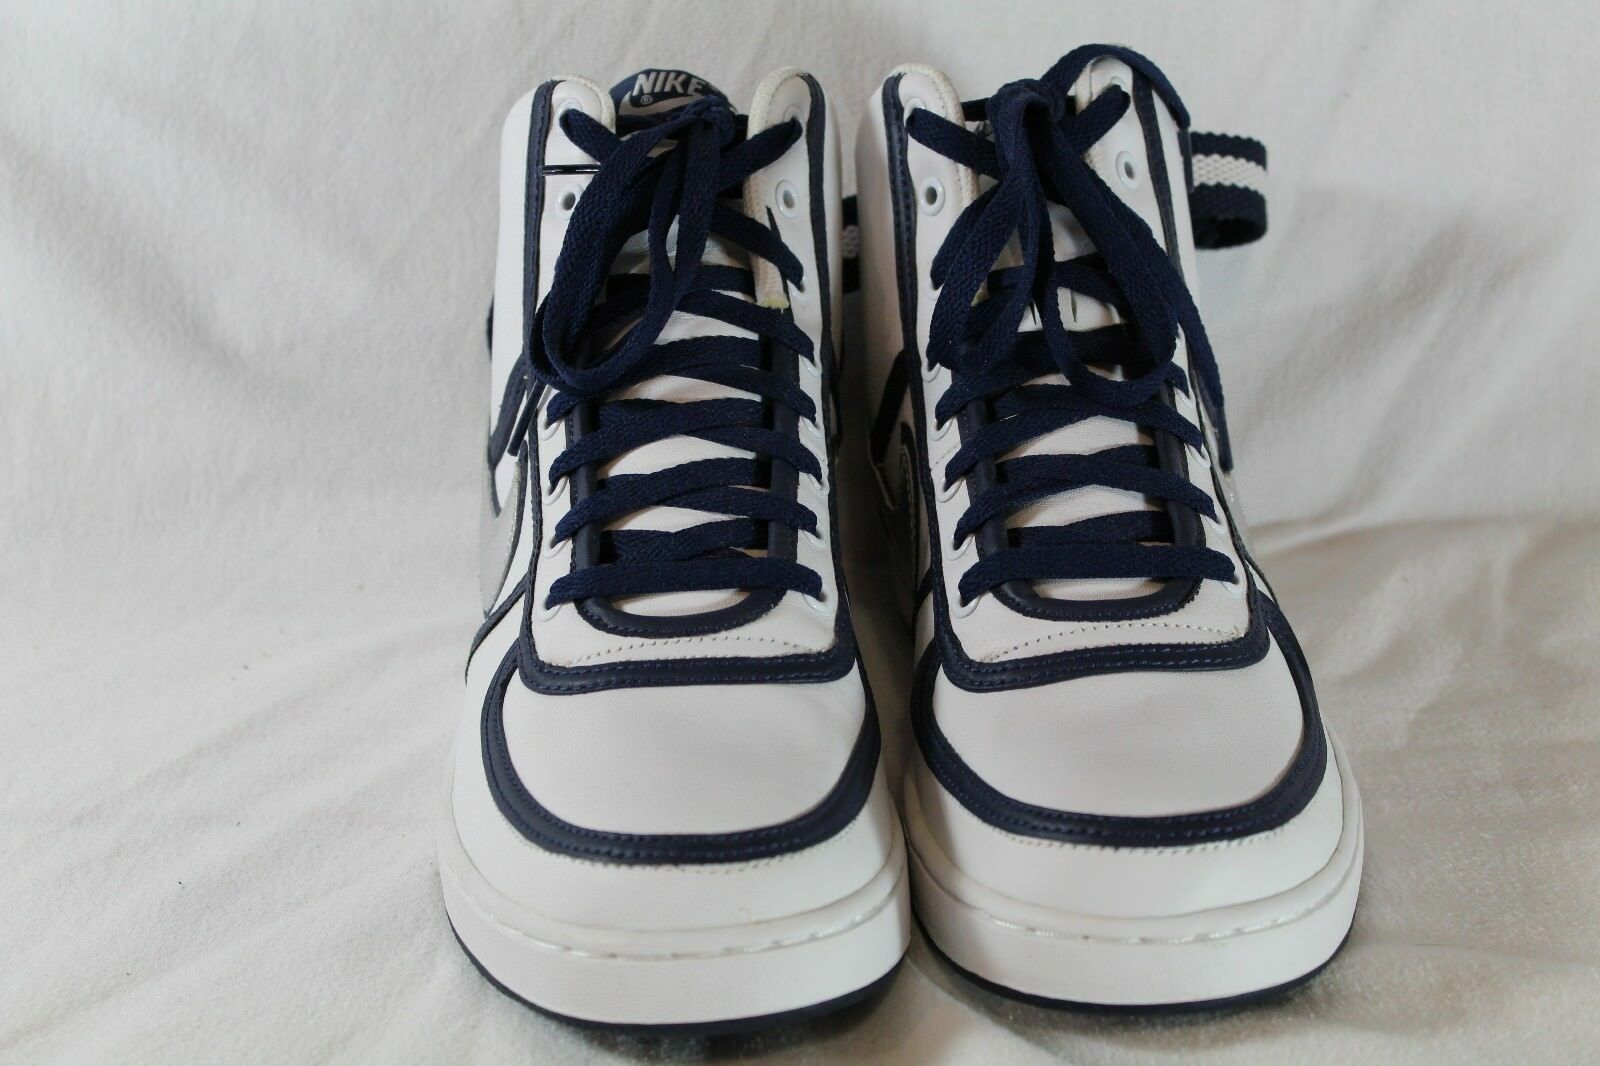 Nike Vandal White Navy Silver Hi Leather DS Brand New Size 10 309427-103